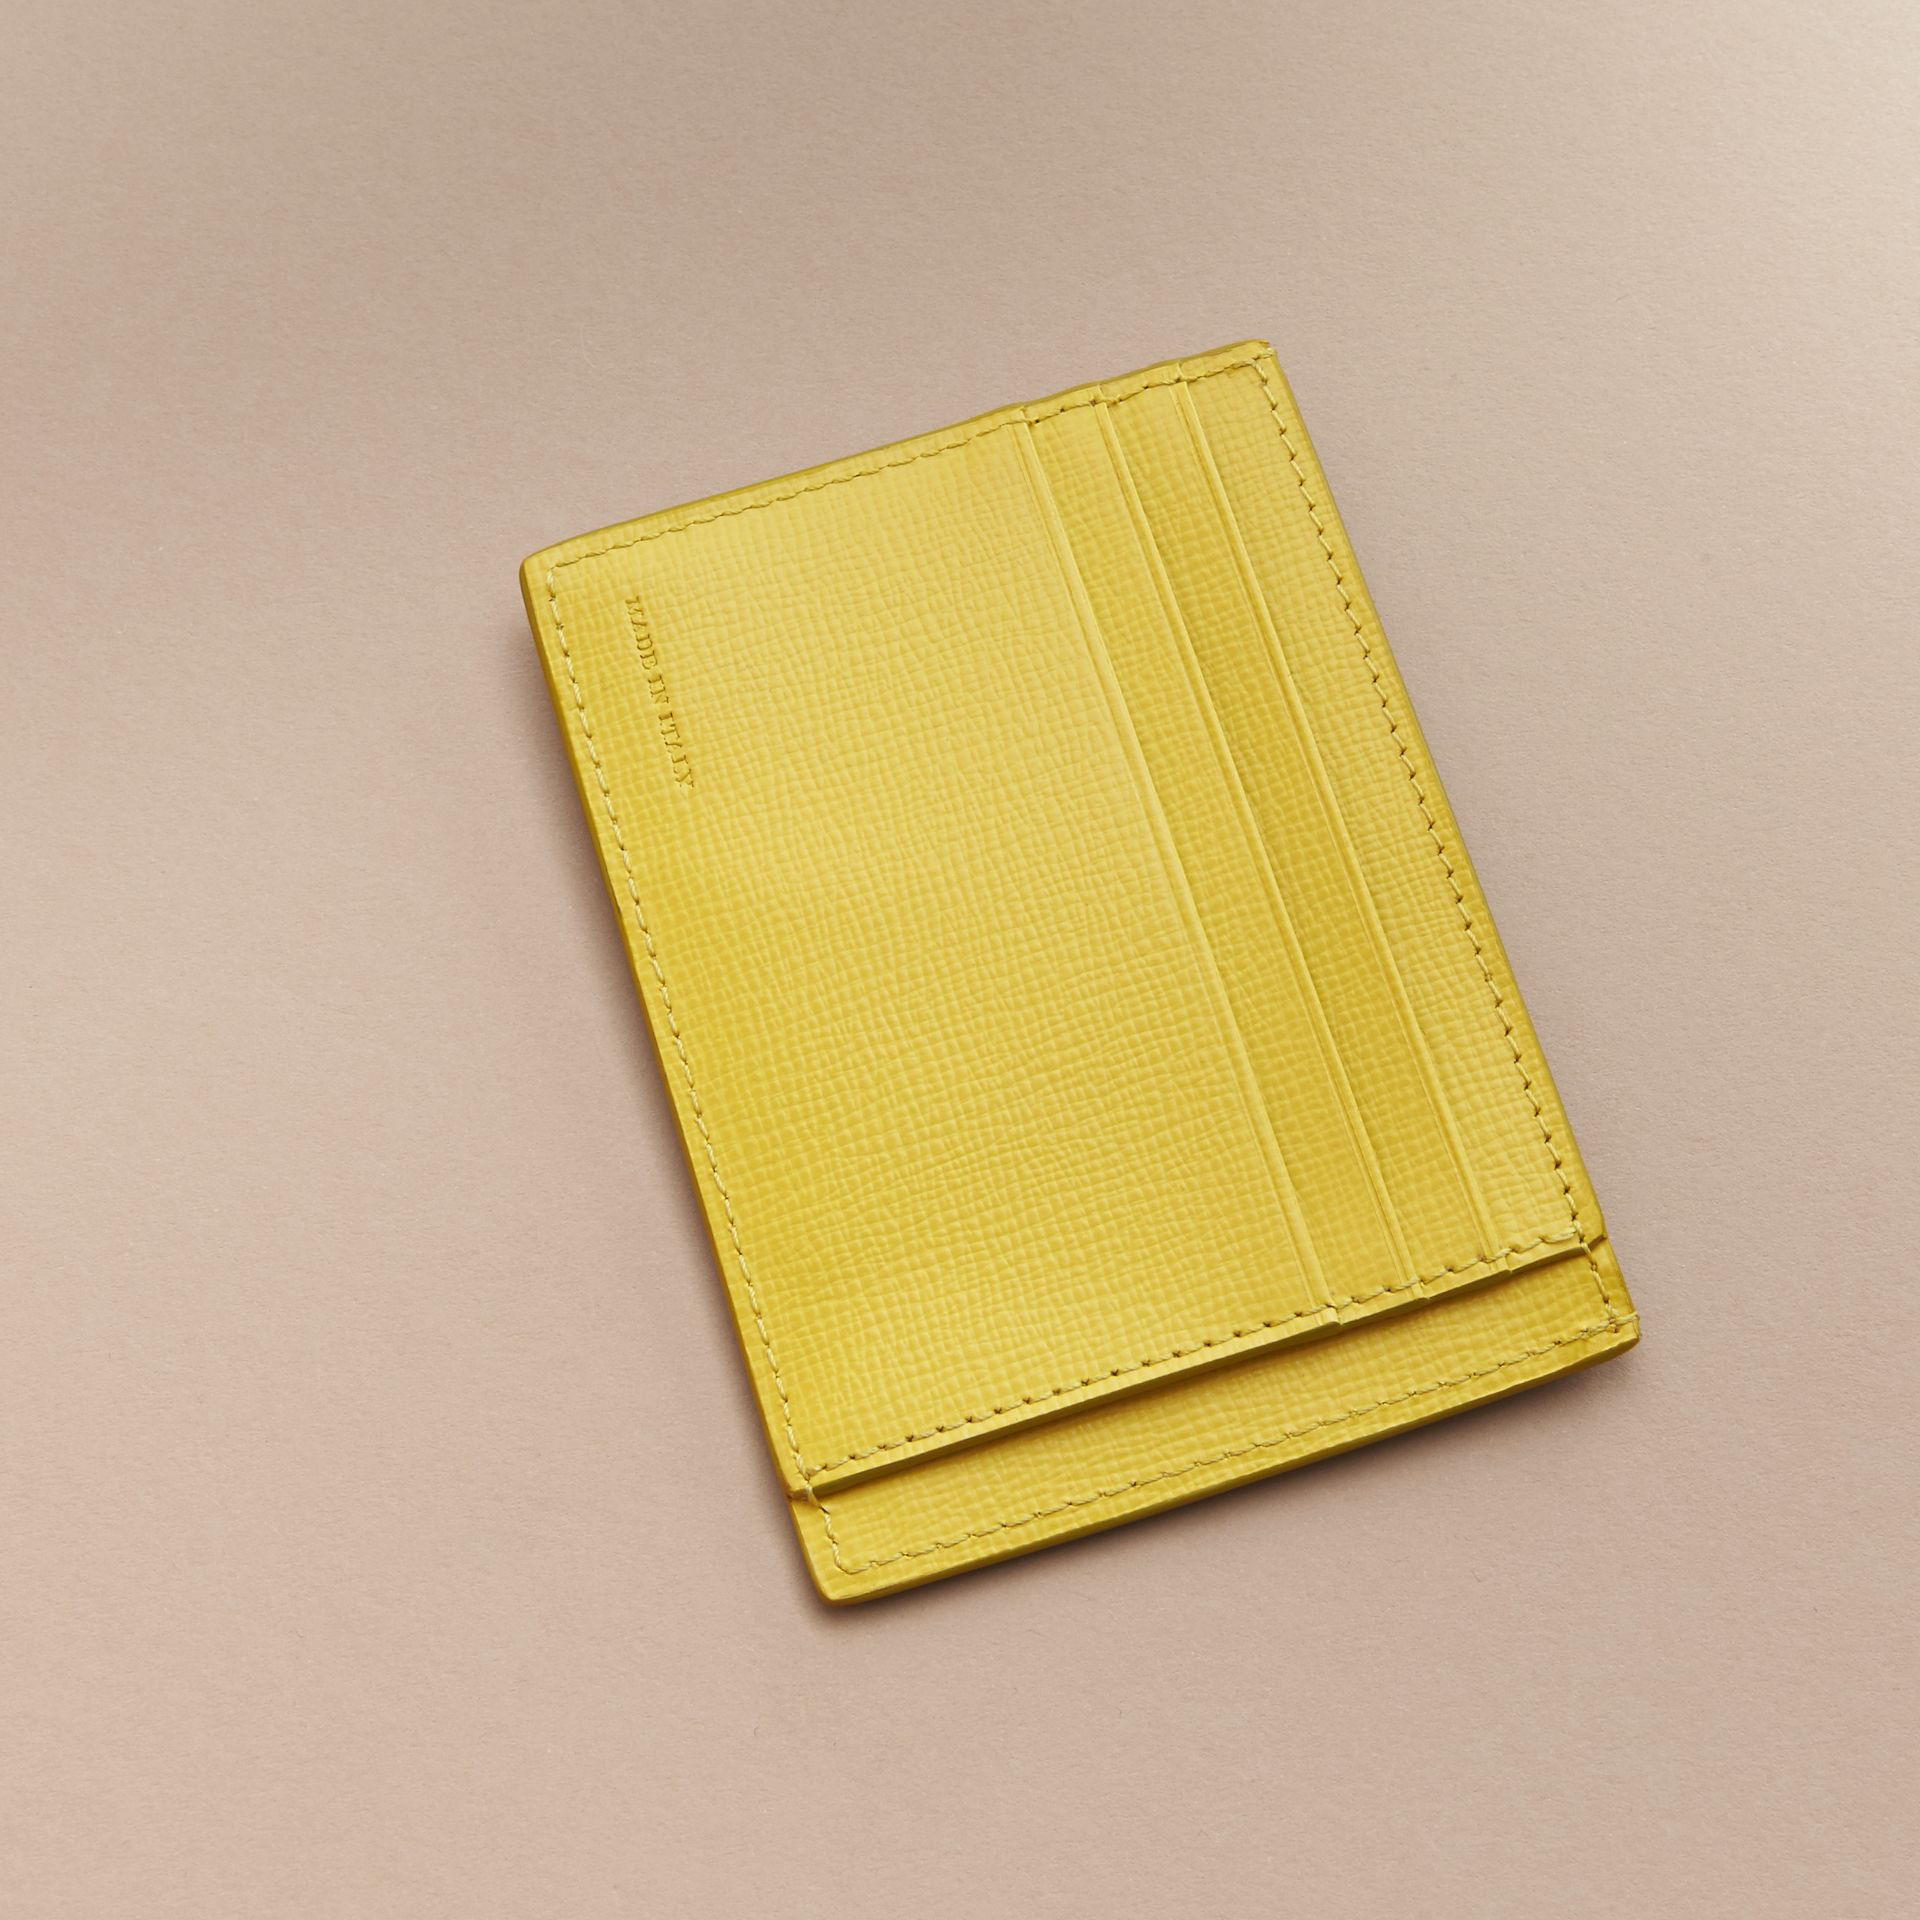 London Leather Card Case in Bright Citrus | Burberry - gallery image 3